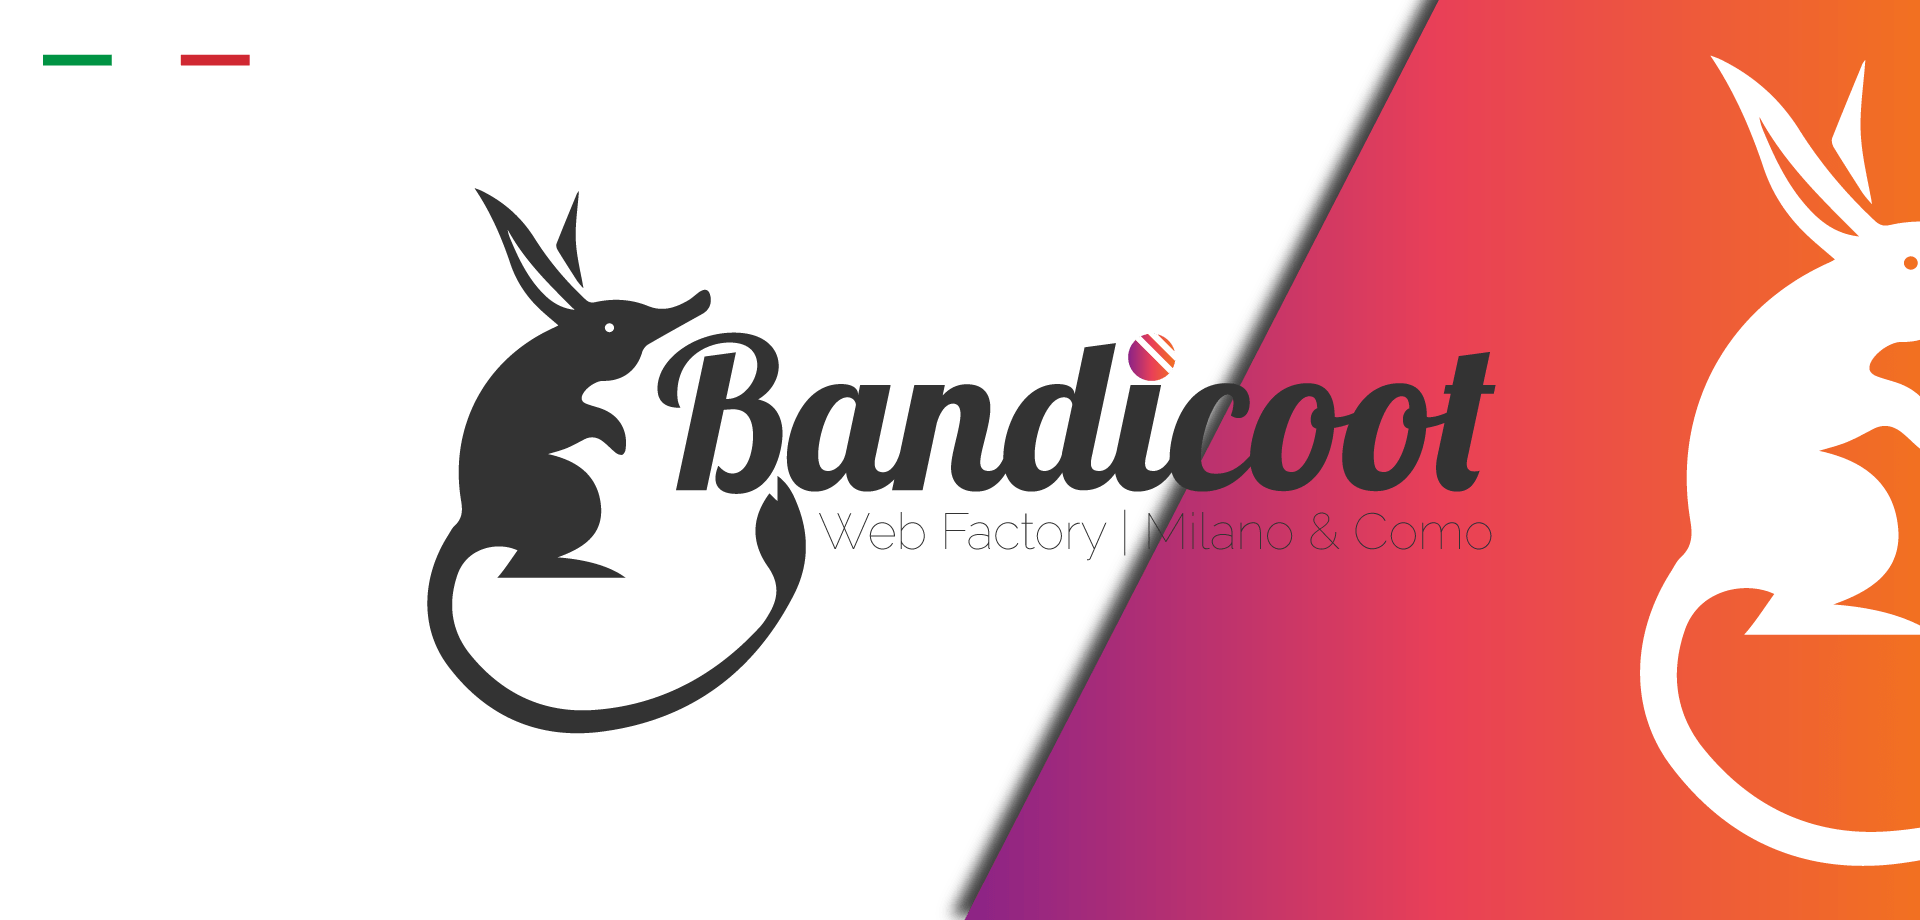 Bandicoot Web Factory